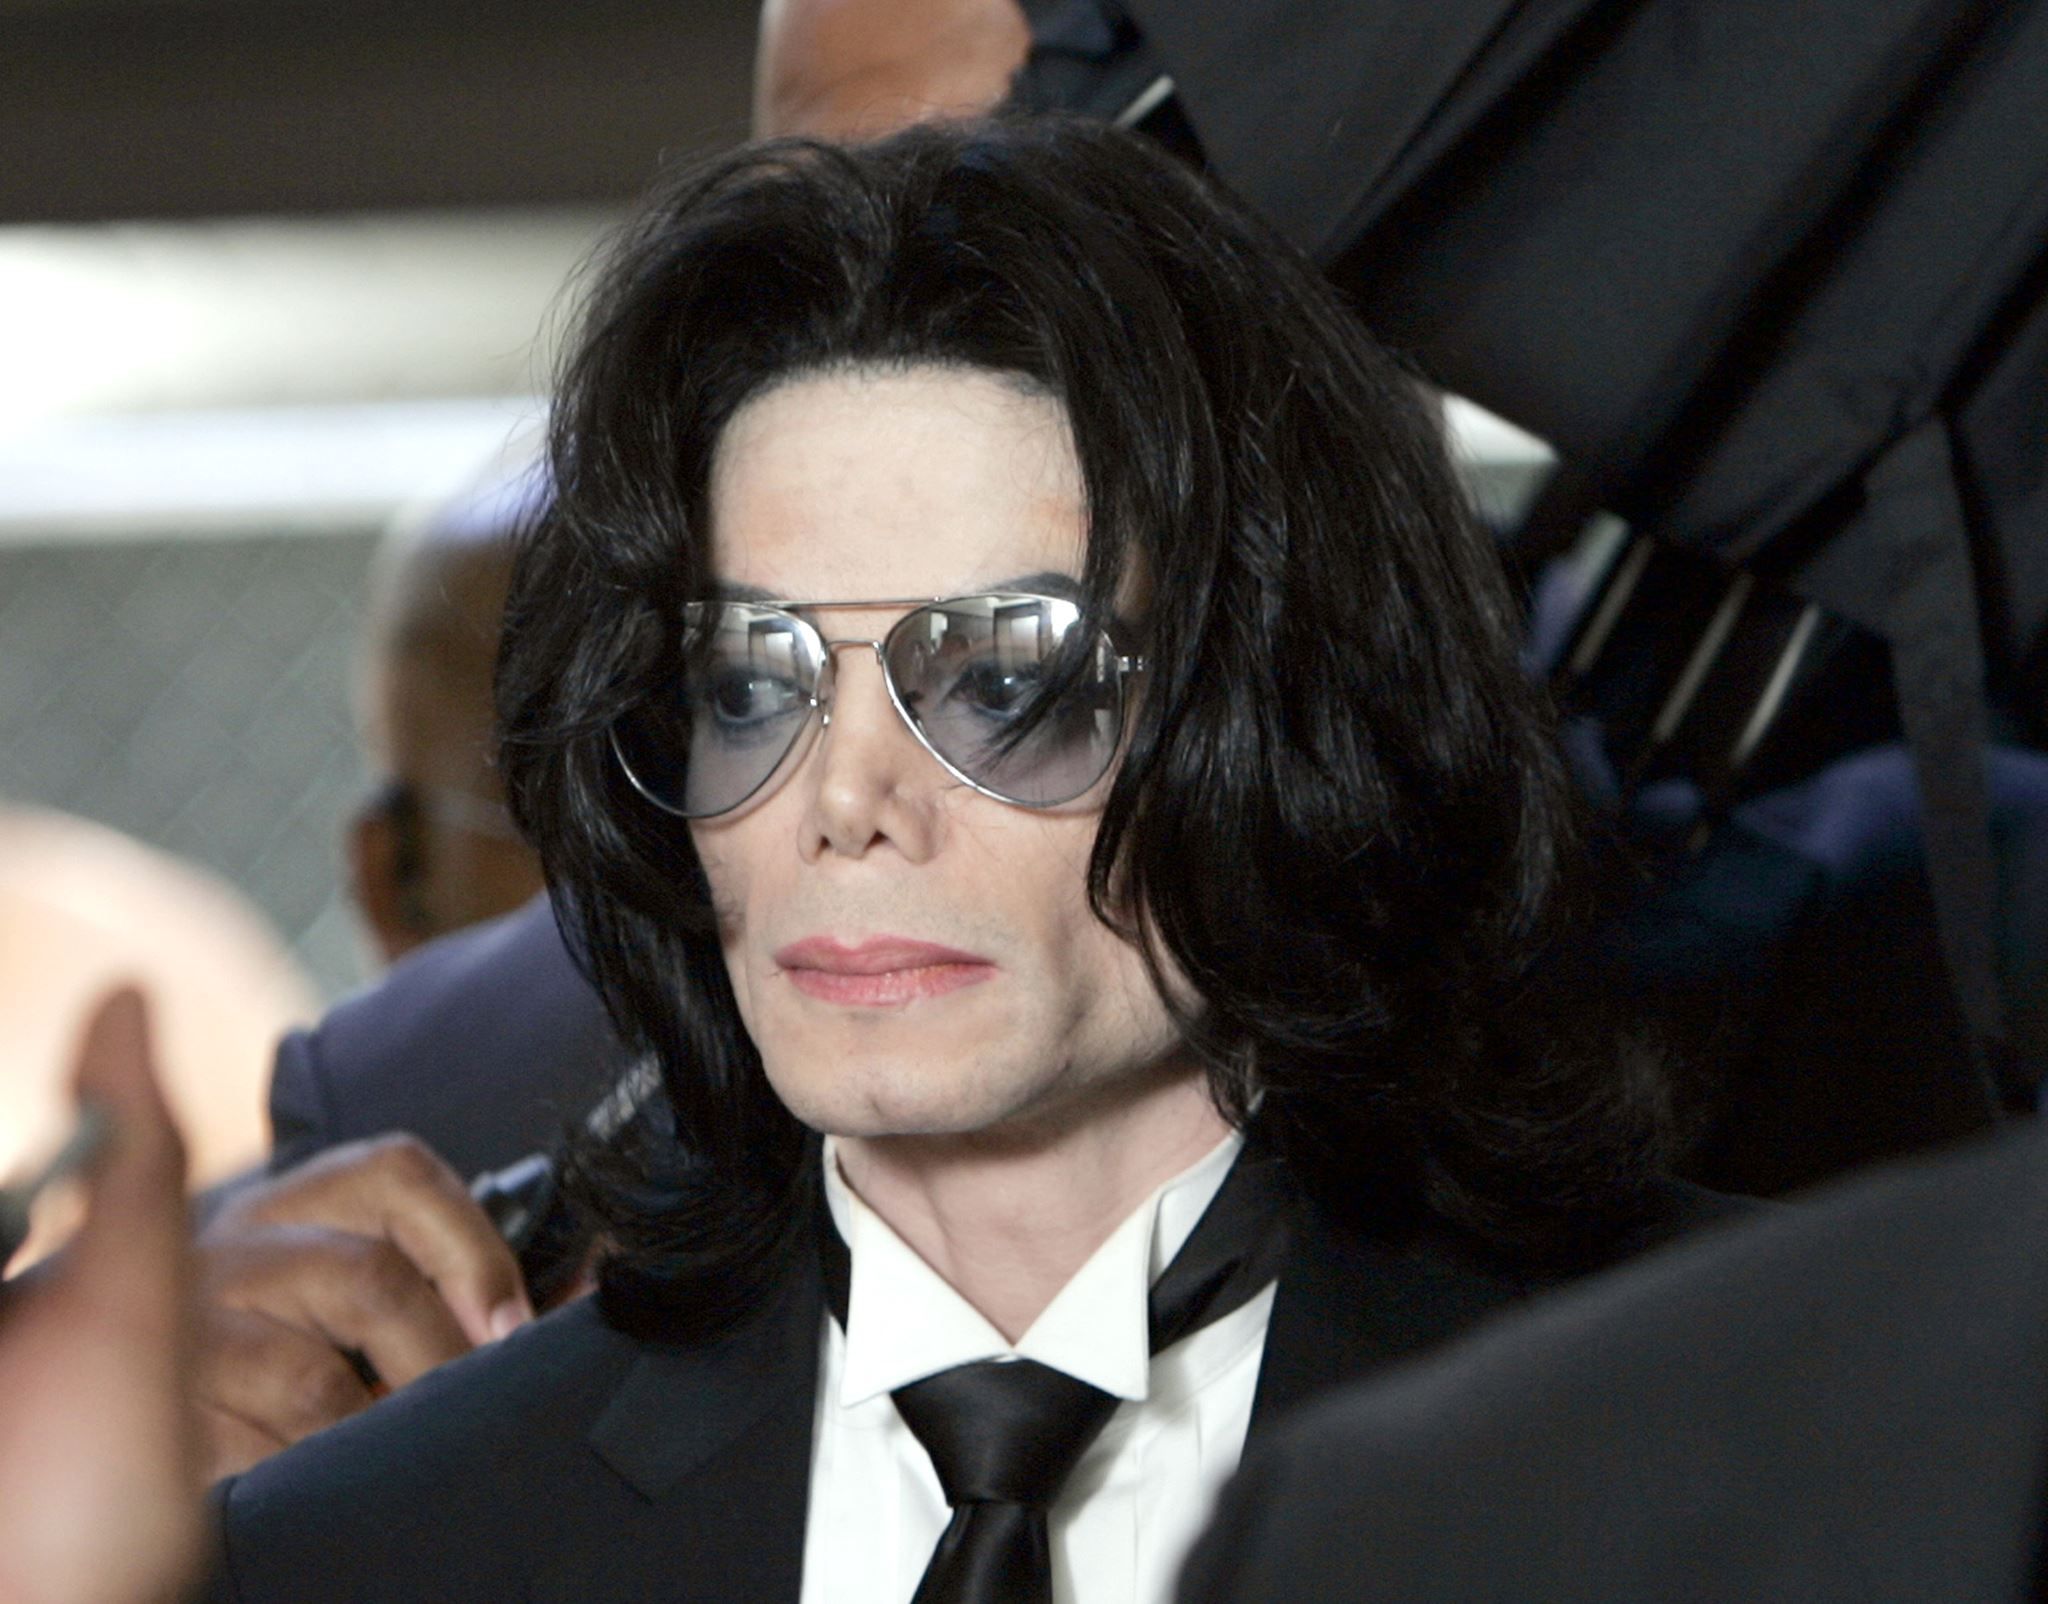 13699459 10154946100408492 1141285956 o Michael Jackson Victim Makes Shocking Claims About Singer